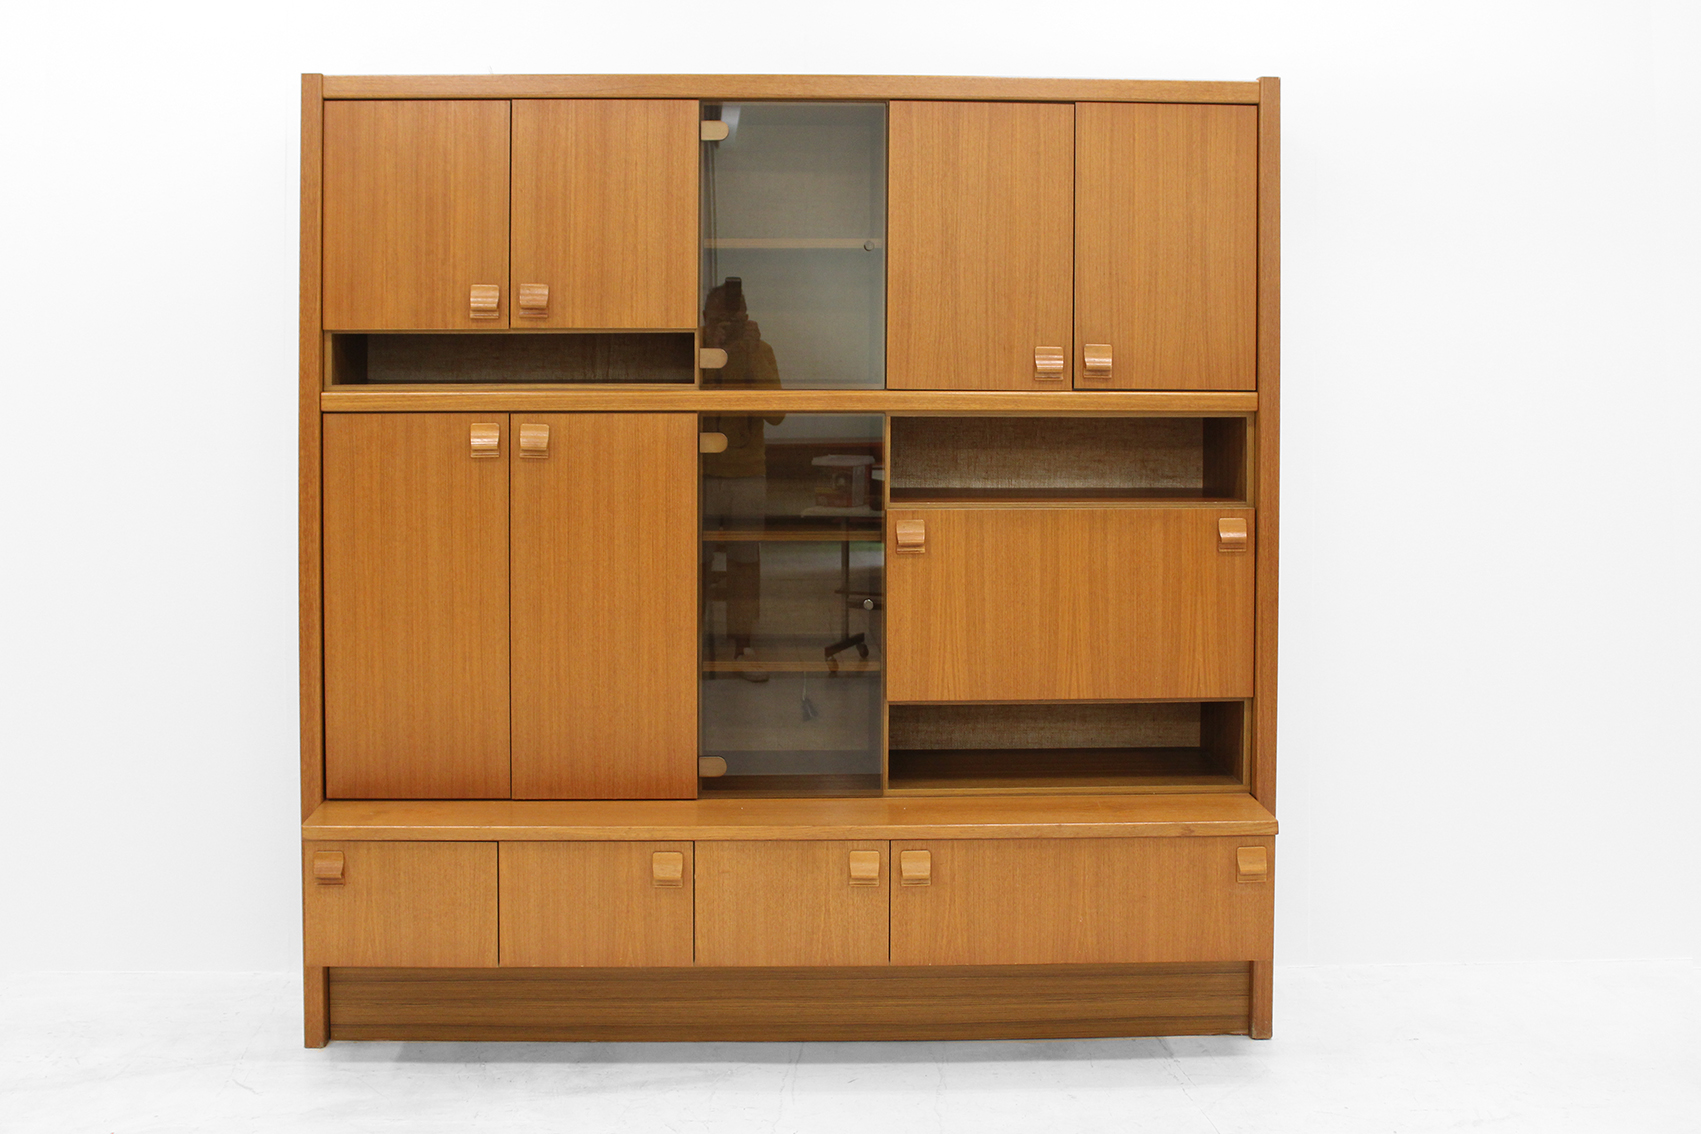 Wall cabinet for office or living room